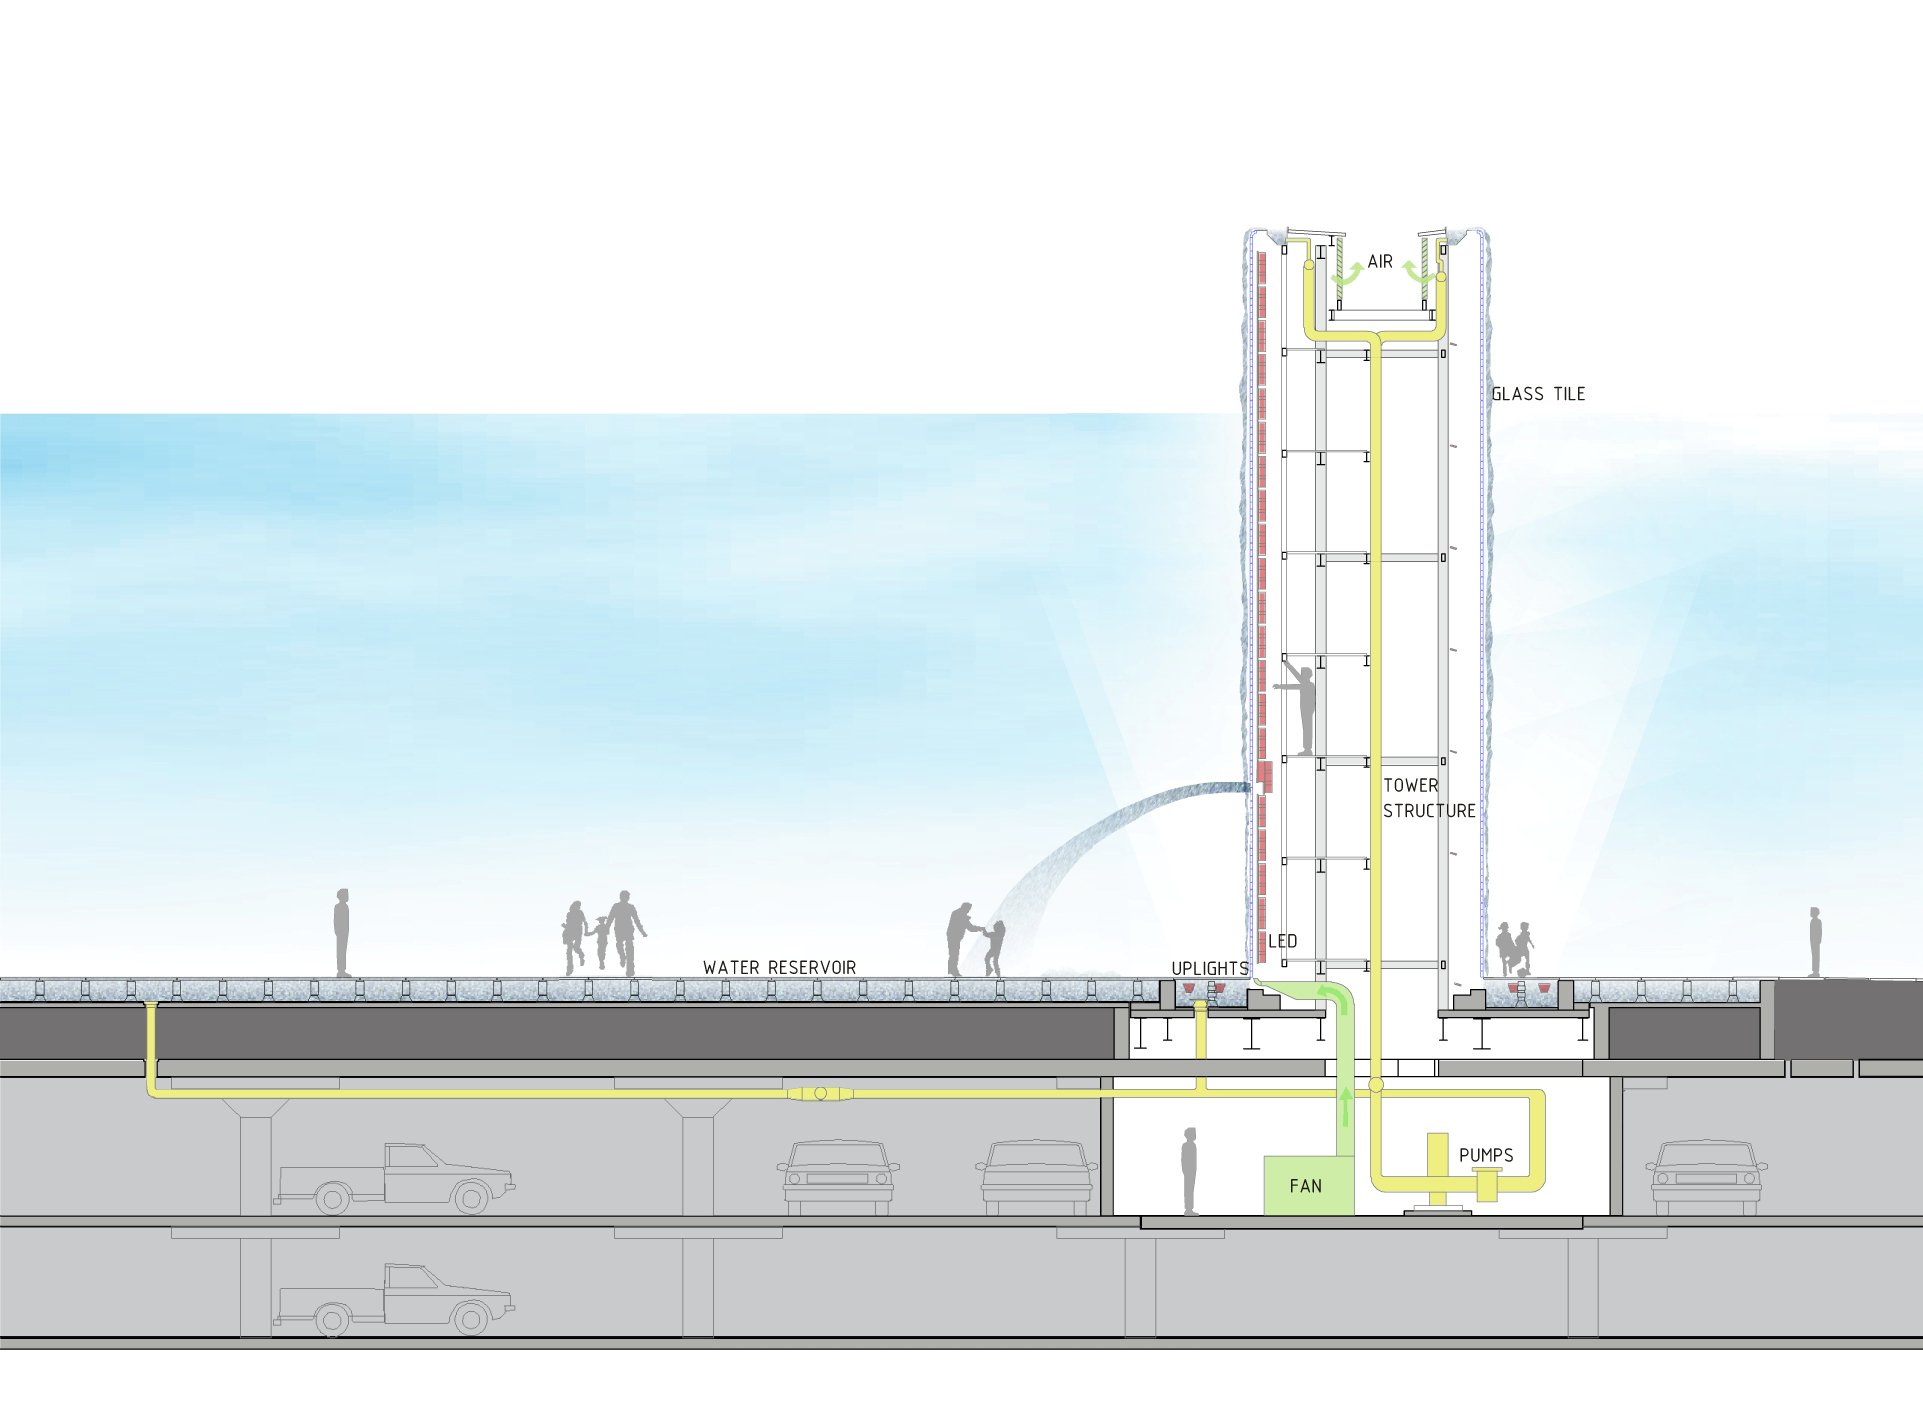 architecture section diagram coleman heat pump wiring gallery of the crown fountain krueck and sexton architects 5